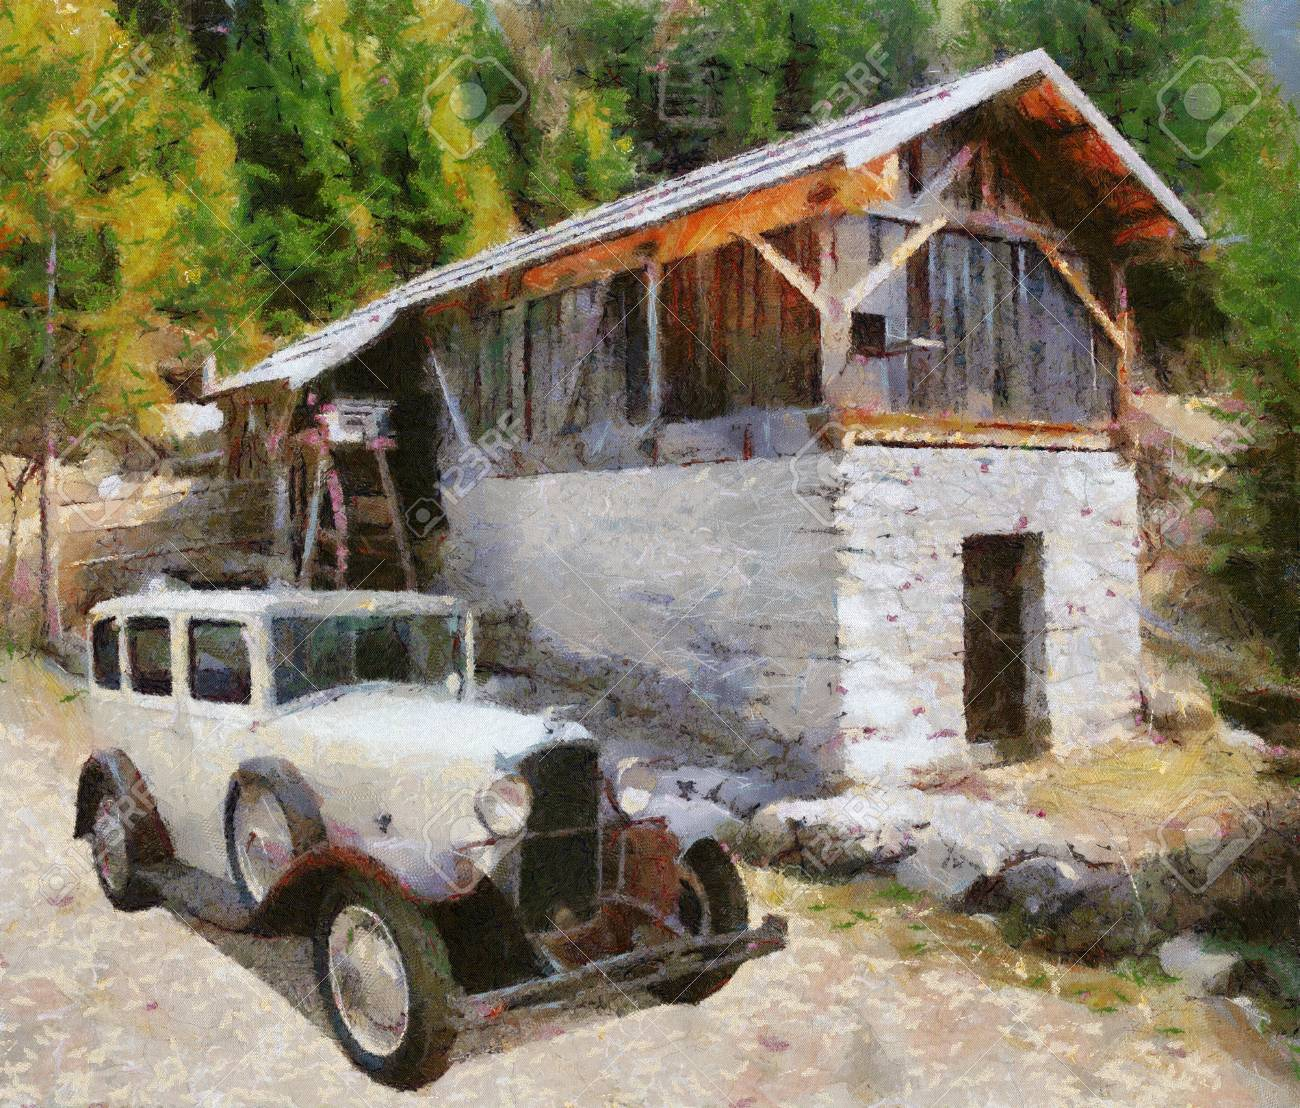 Vauxhall Cadette 1931 at old watermill. Oil Painting (Camille Style). Stock Photo - 8363318